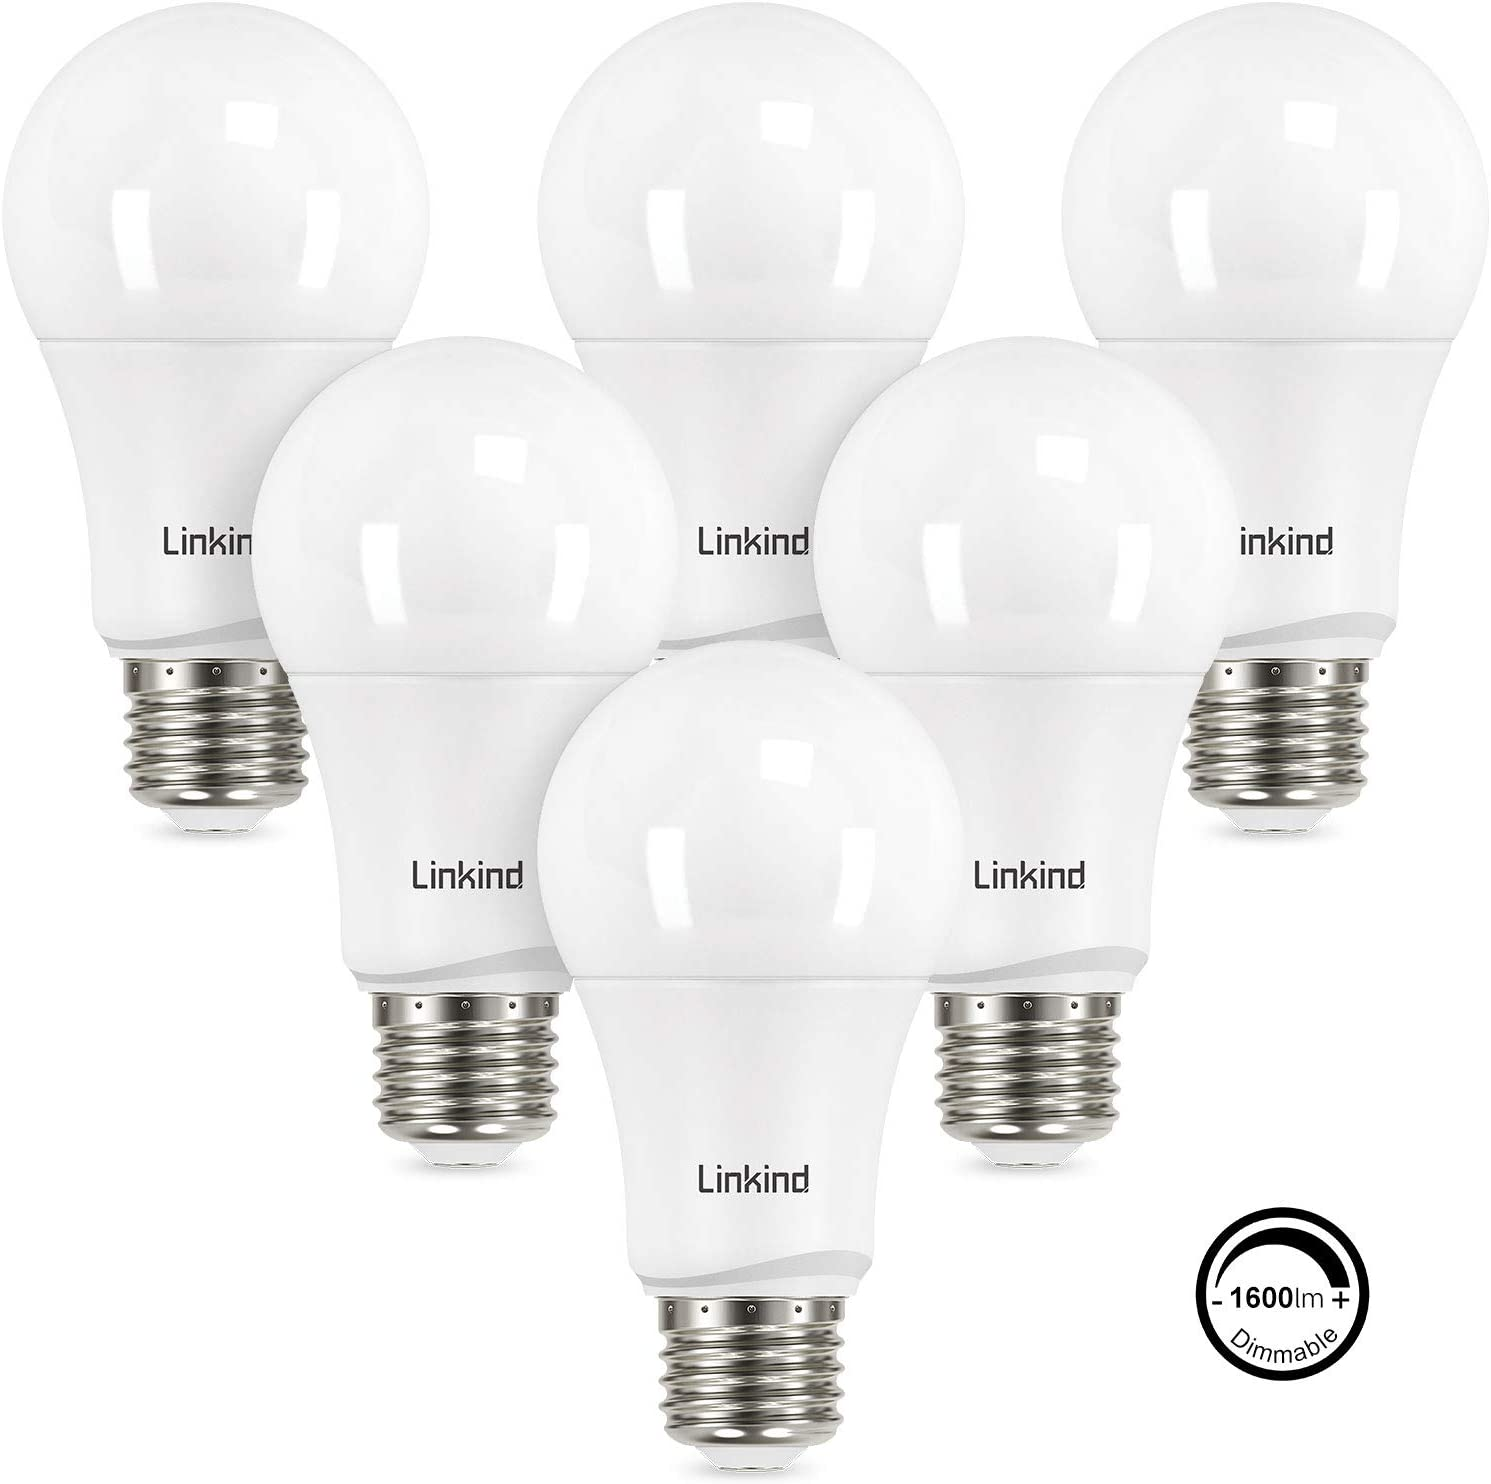 Linkind Dimmable A19 LED Light Bulbs, 100W Equivalent, E26 Base, 5000K Daylight, 15.5W 1600 Lumens 120V, UL Listed FCC Certified, Energy Star, Pack of 6